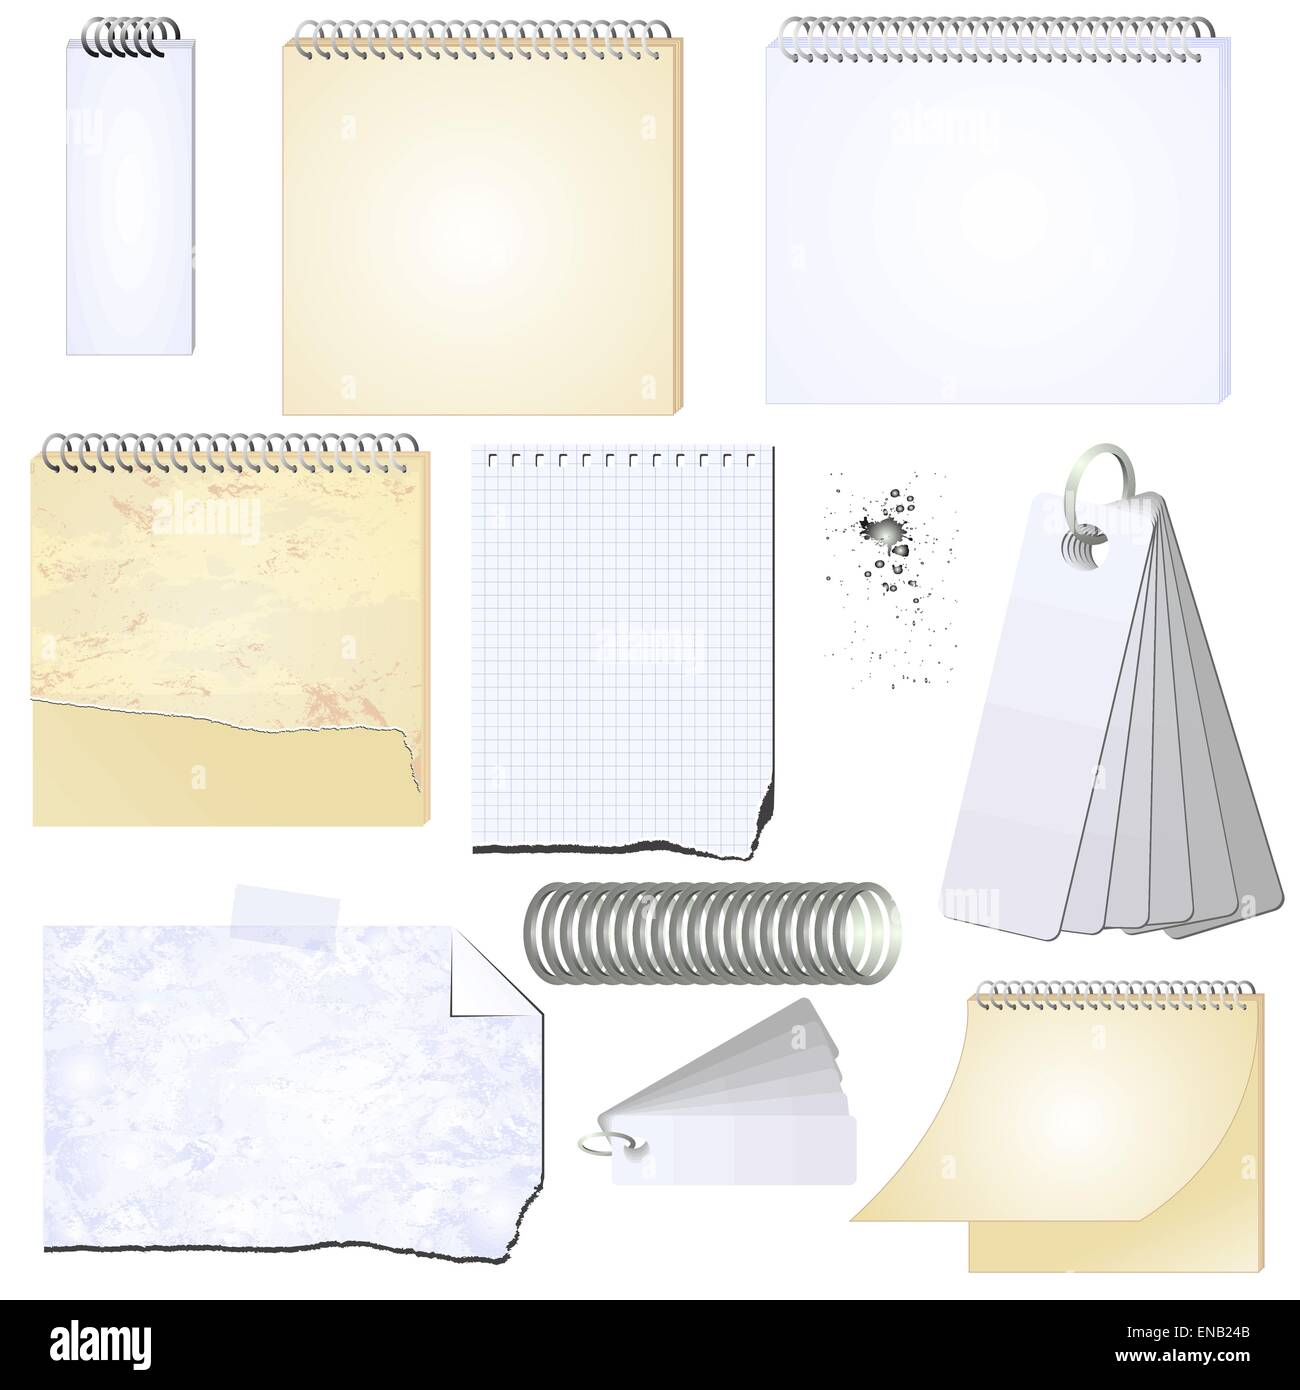 Vector illustration of the vector grunge notepad and scrap book  - isolated - Stock Vector